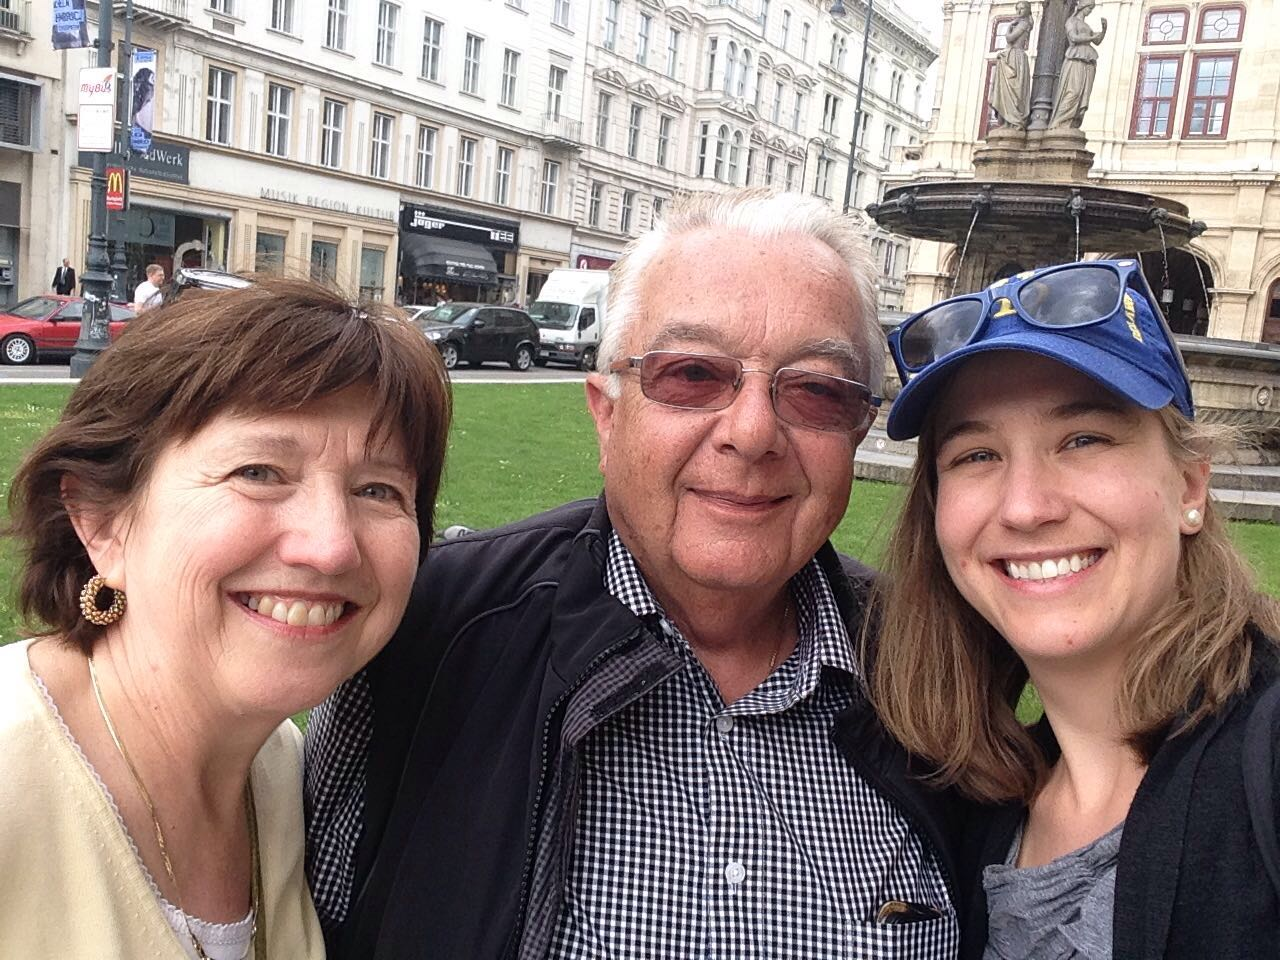 Happy faces on a walk through the city